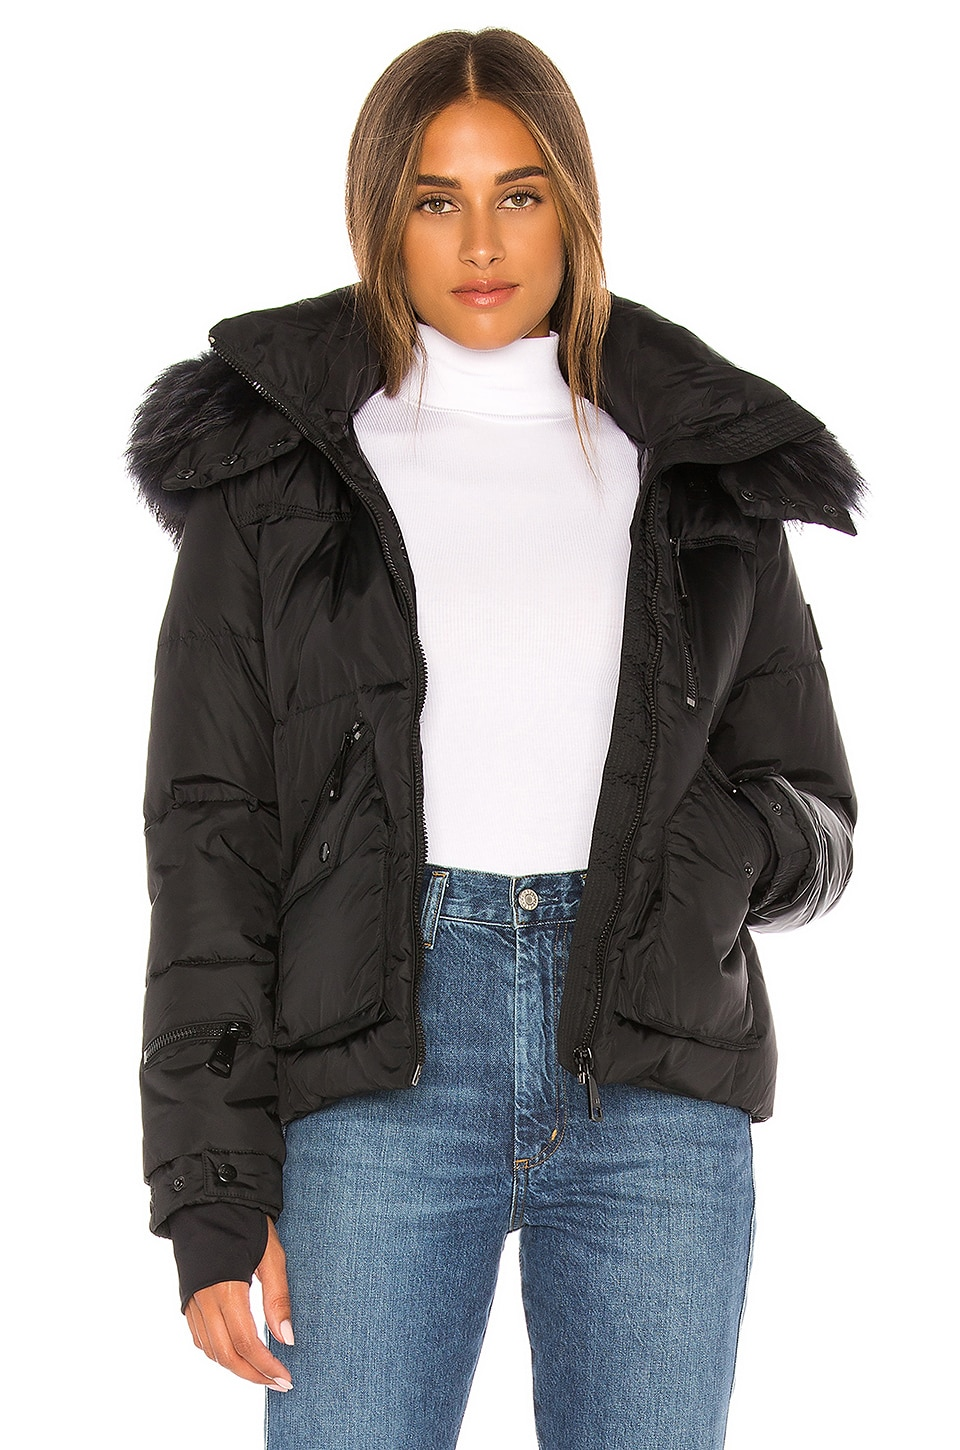 SAM. Detachable Fur Hood Jetset Puffer Jacket in Black & Charcoal